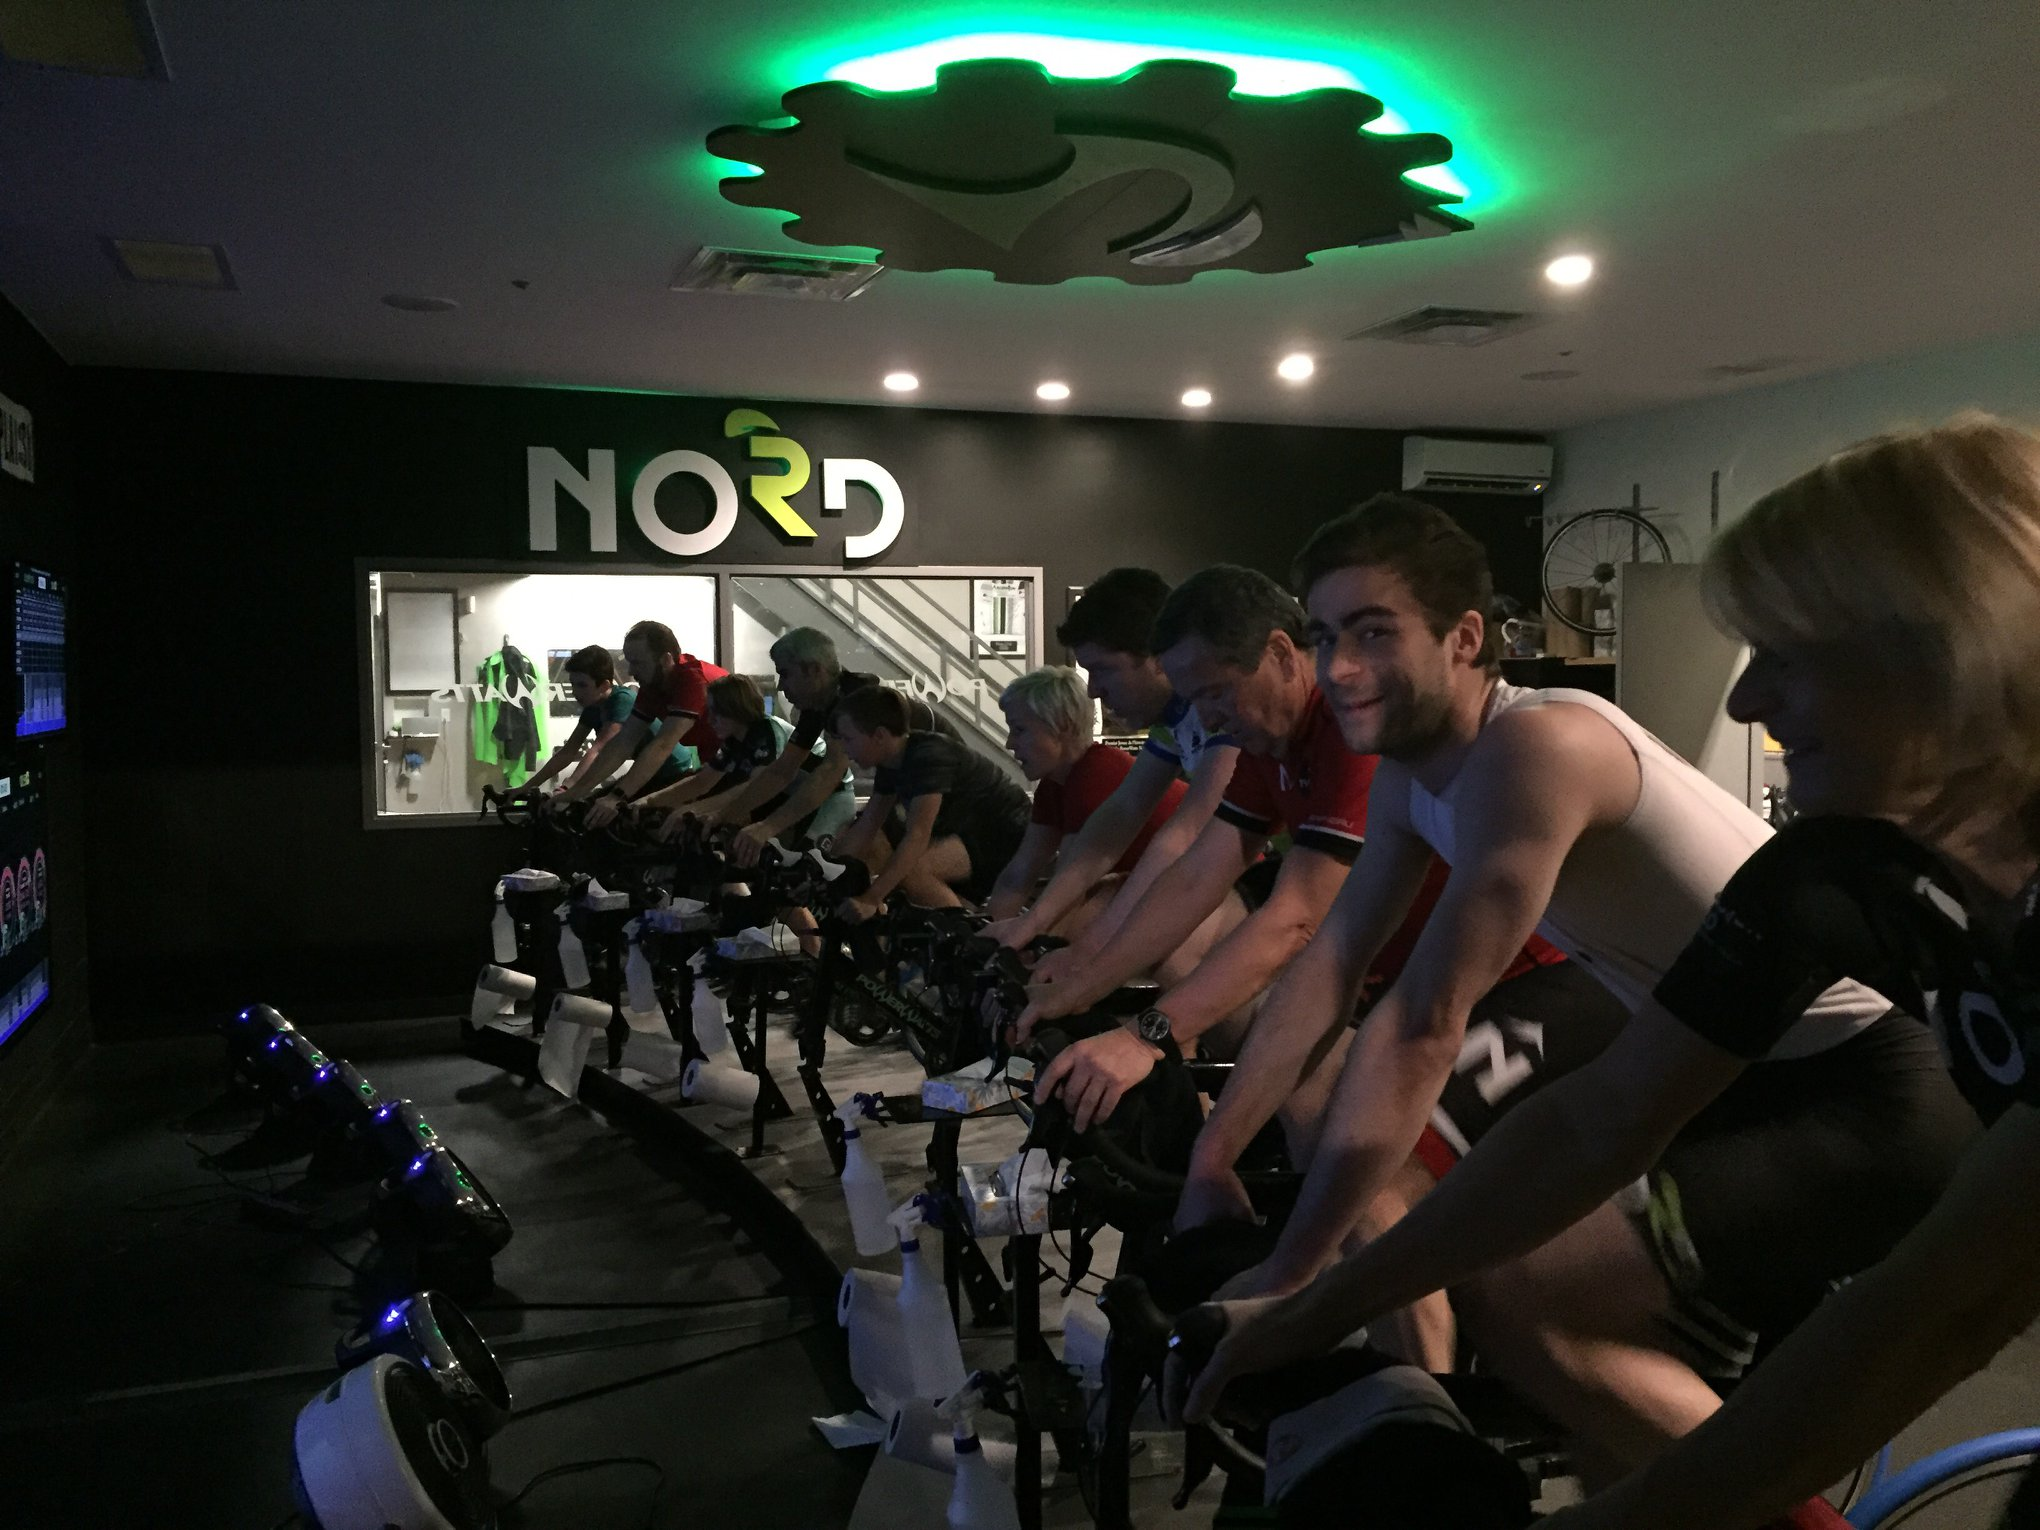 A subscription to Powerwatts Nord training studio - This is where I train when I am at home in the winter. World Class training facilities, great coaches and a very fun vibe. Email them to get a free trial and I promise you will enjoy it, and possibly find a new family for training :)